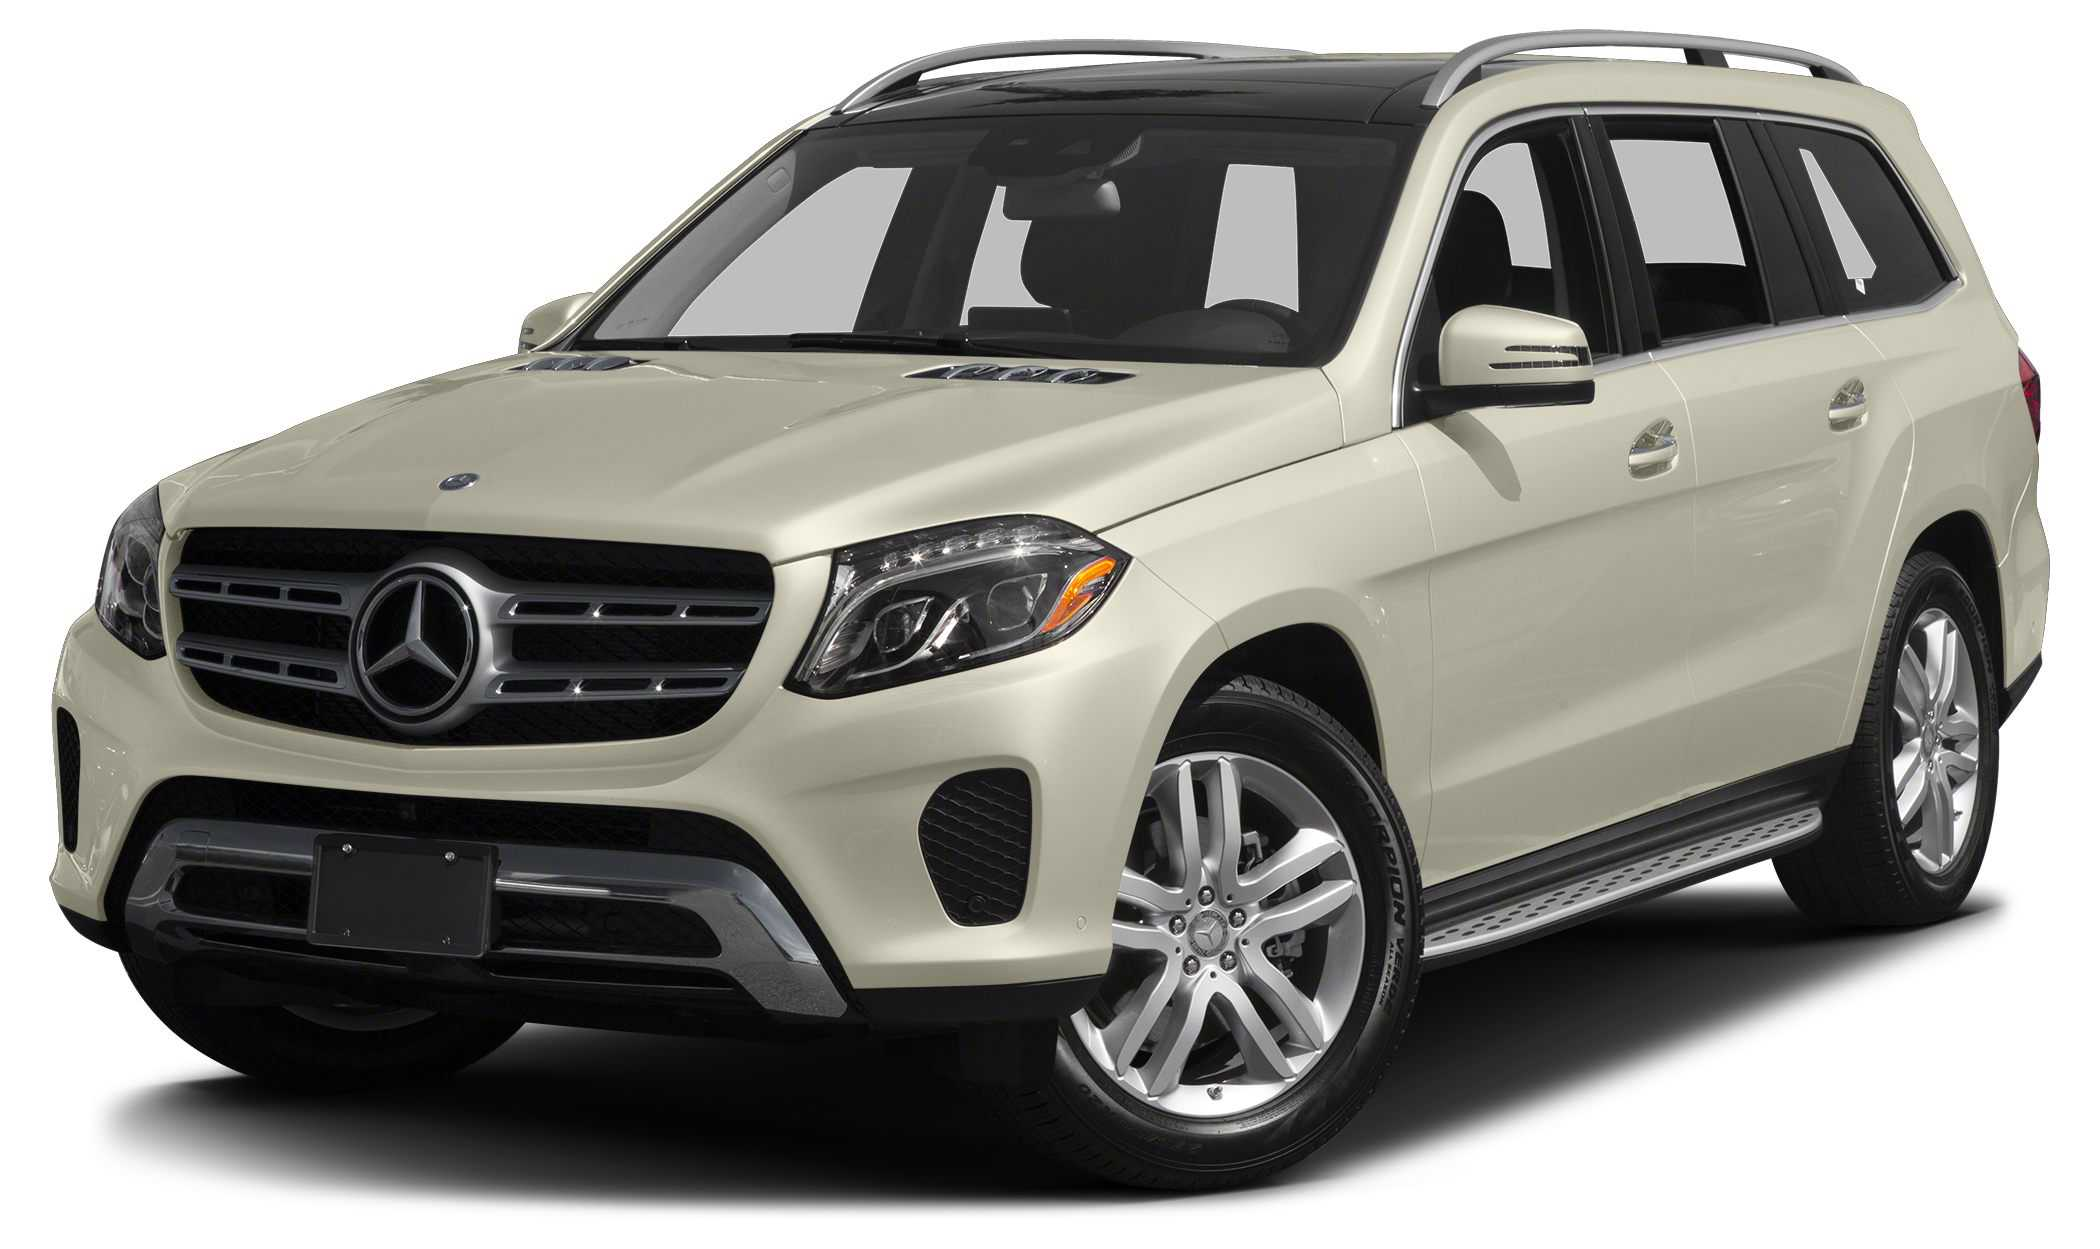 2017 mercedes benz gls 450 for sale in littleton co for 2017 mercedes benz gls 450